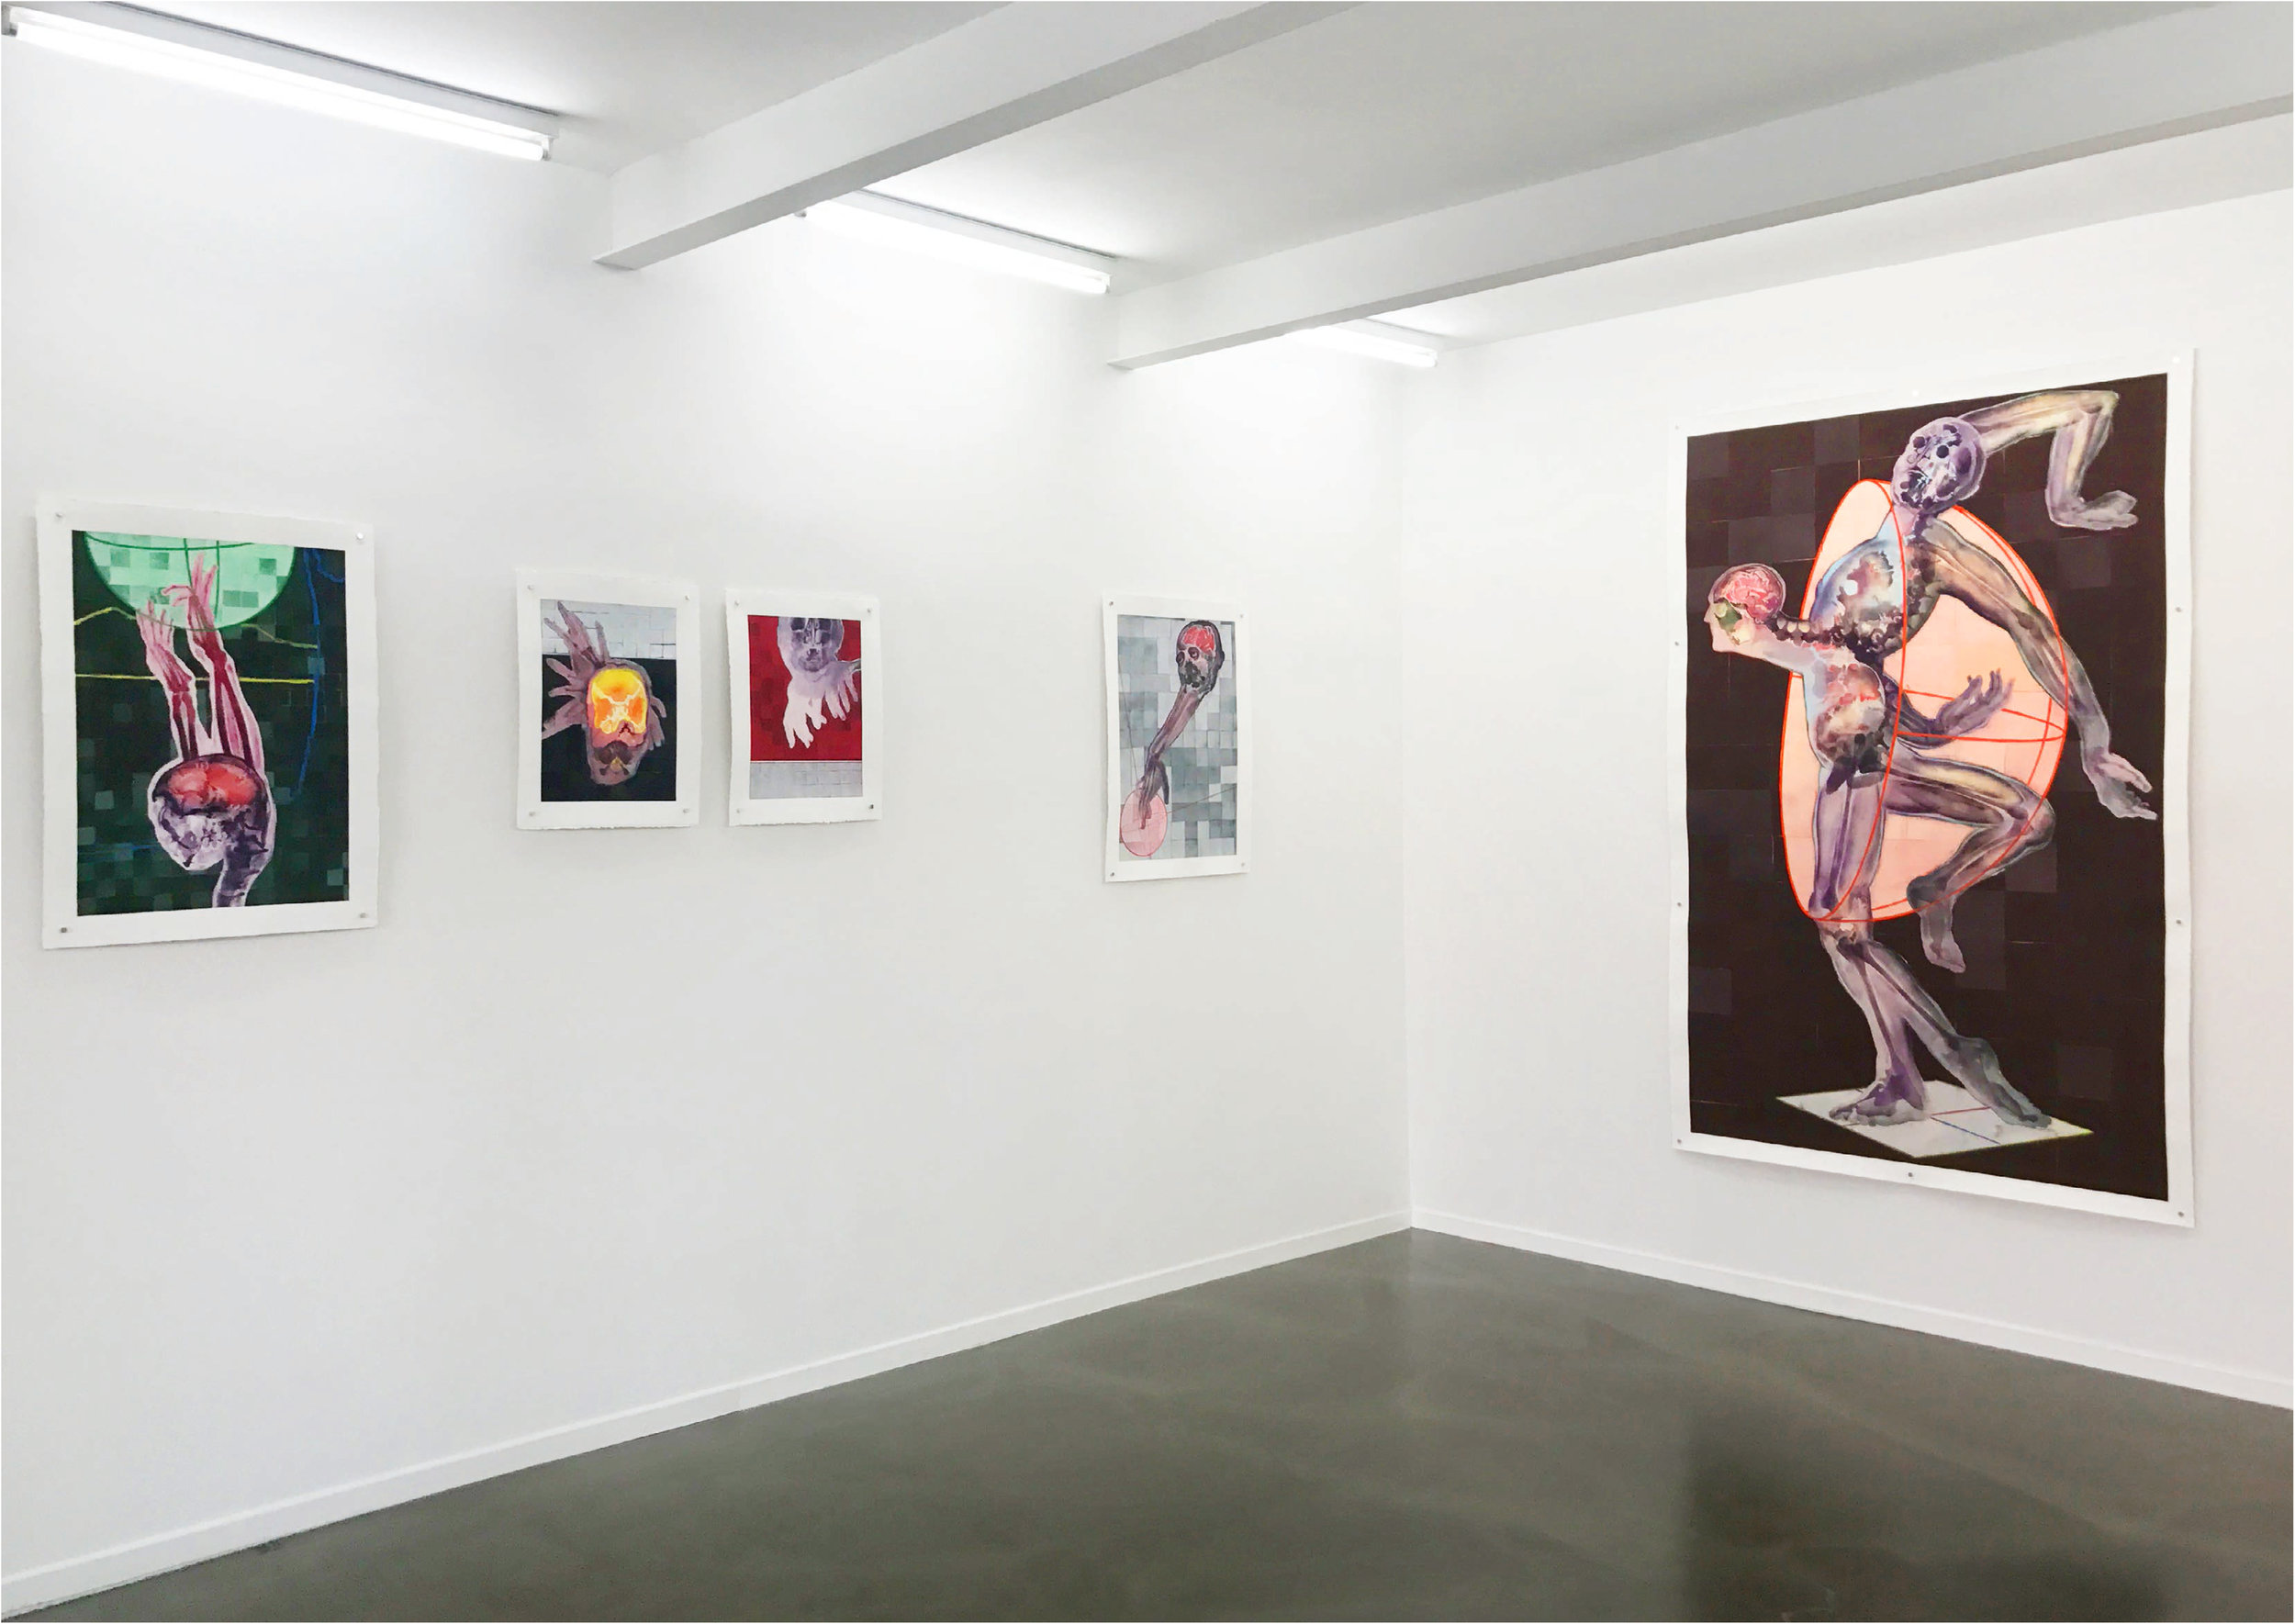 BIO CARRIER, CREATIONAL REPRESENTATION, IMMACULATE OBSERVER, RECOMBINED GYNOID, (r) THE ABIOGENETIC BEINGS HALF DEATH, 2017; Exhibition view, Galerie Kai Erdmann